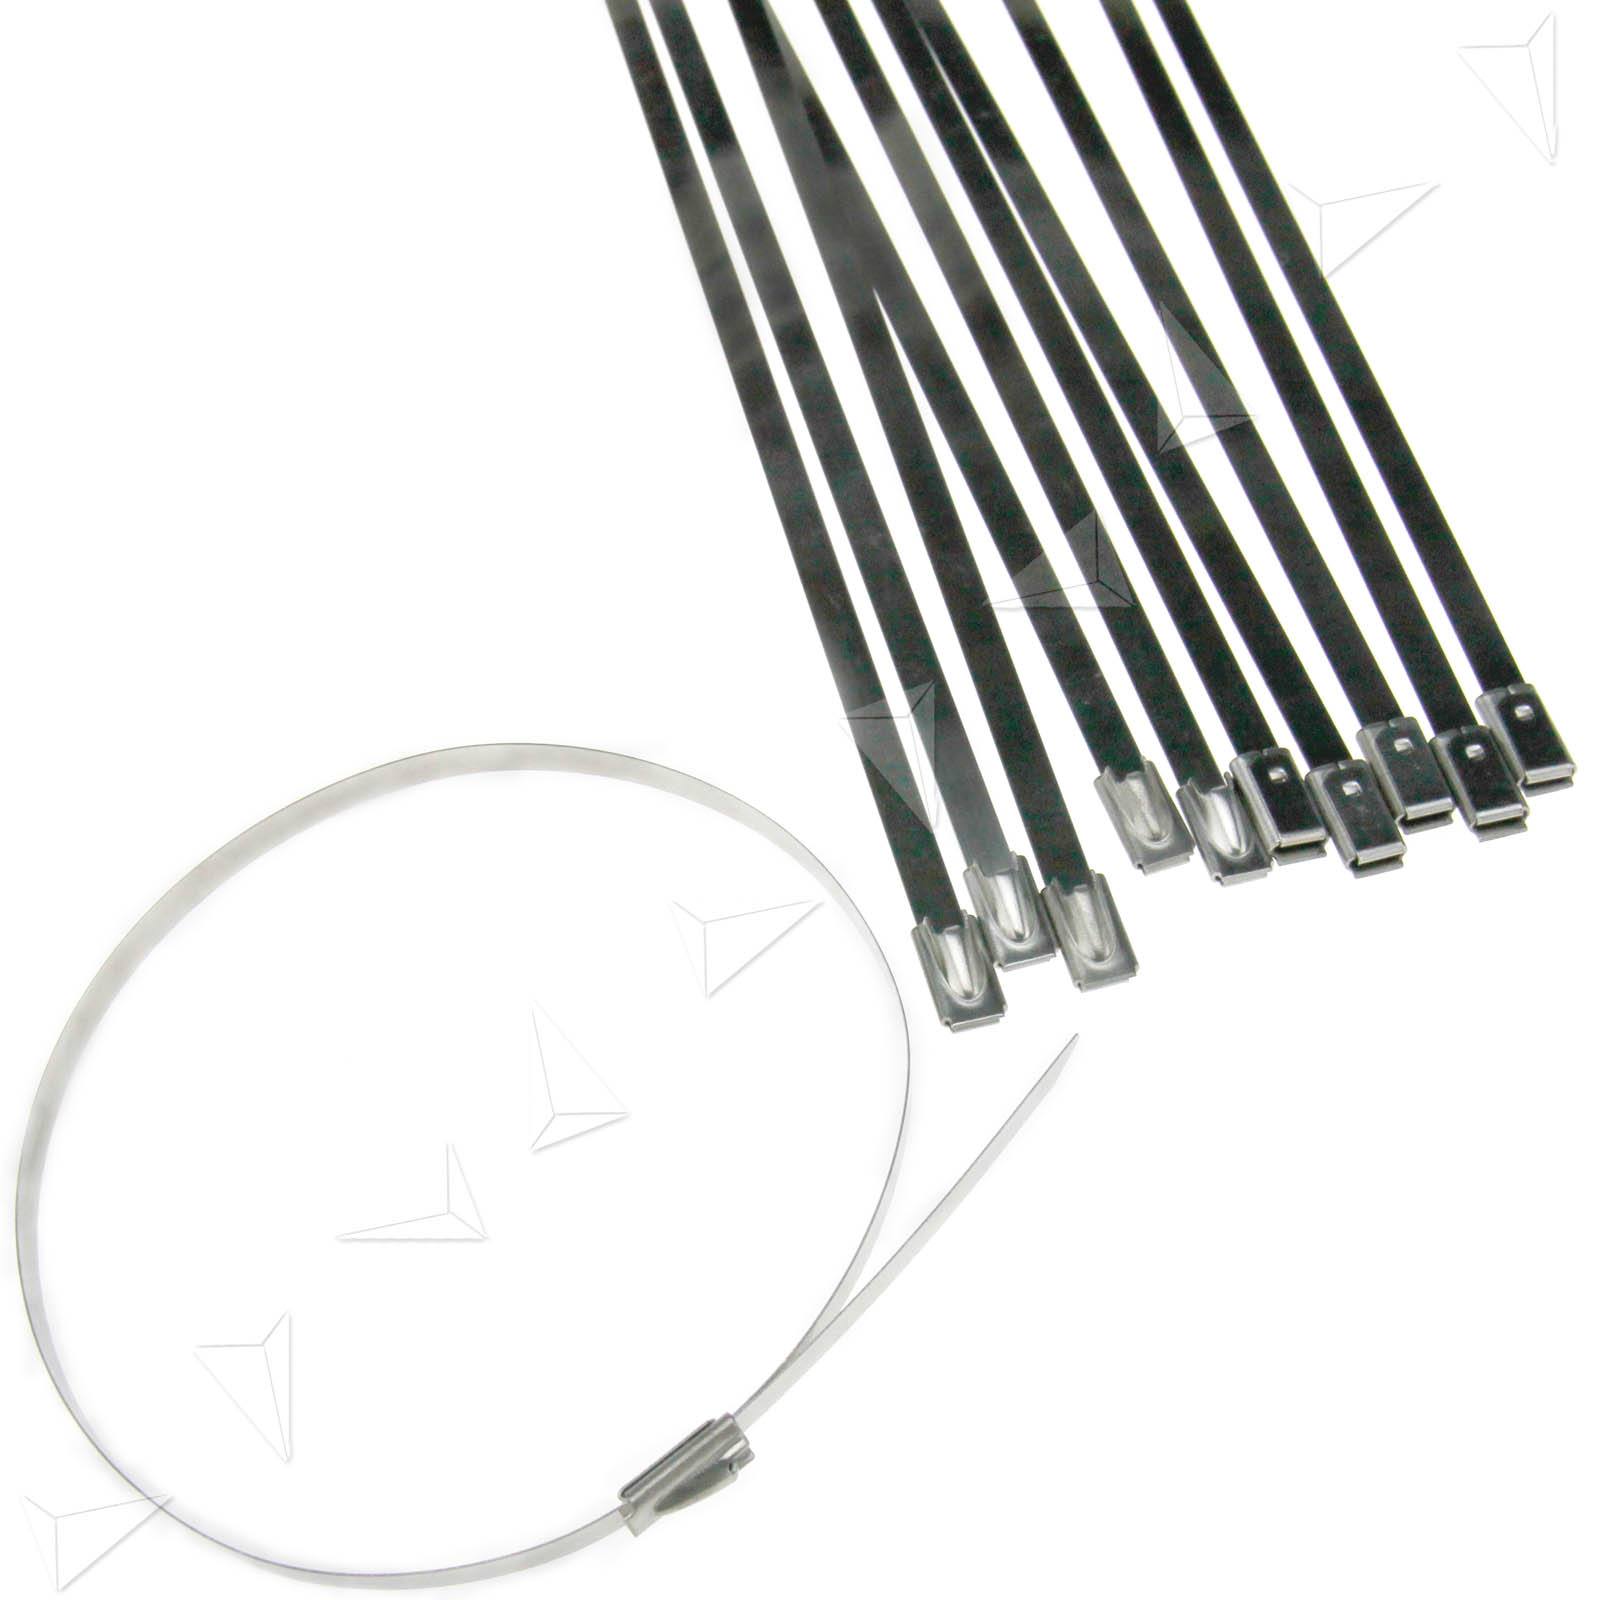 50 X Top Quality Stainless Steel Metal Cable Ties Ebay